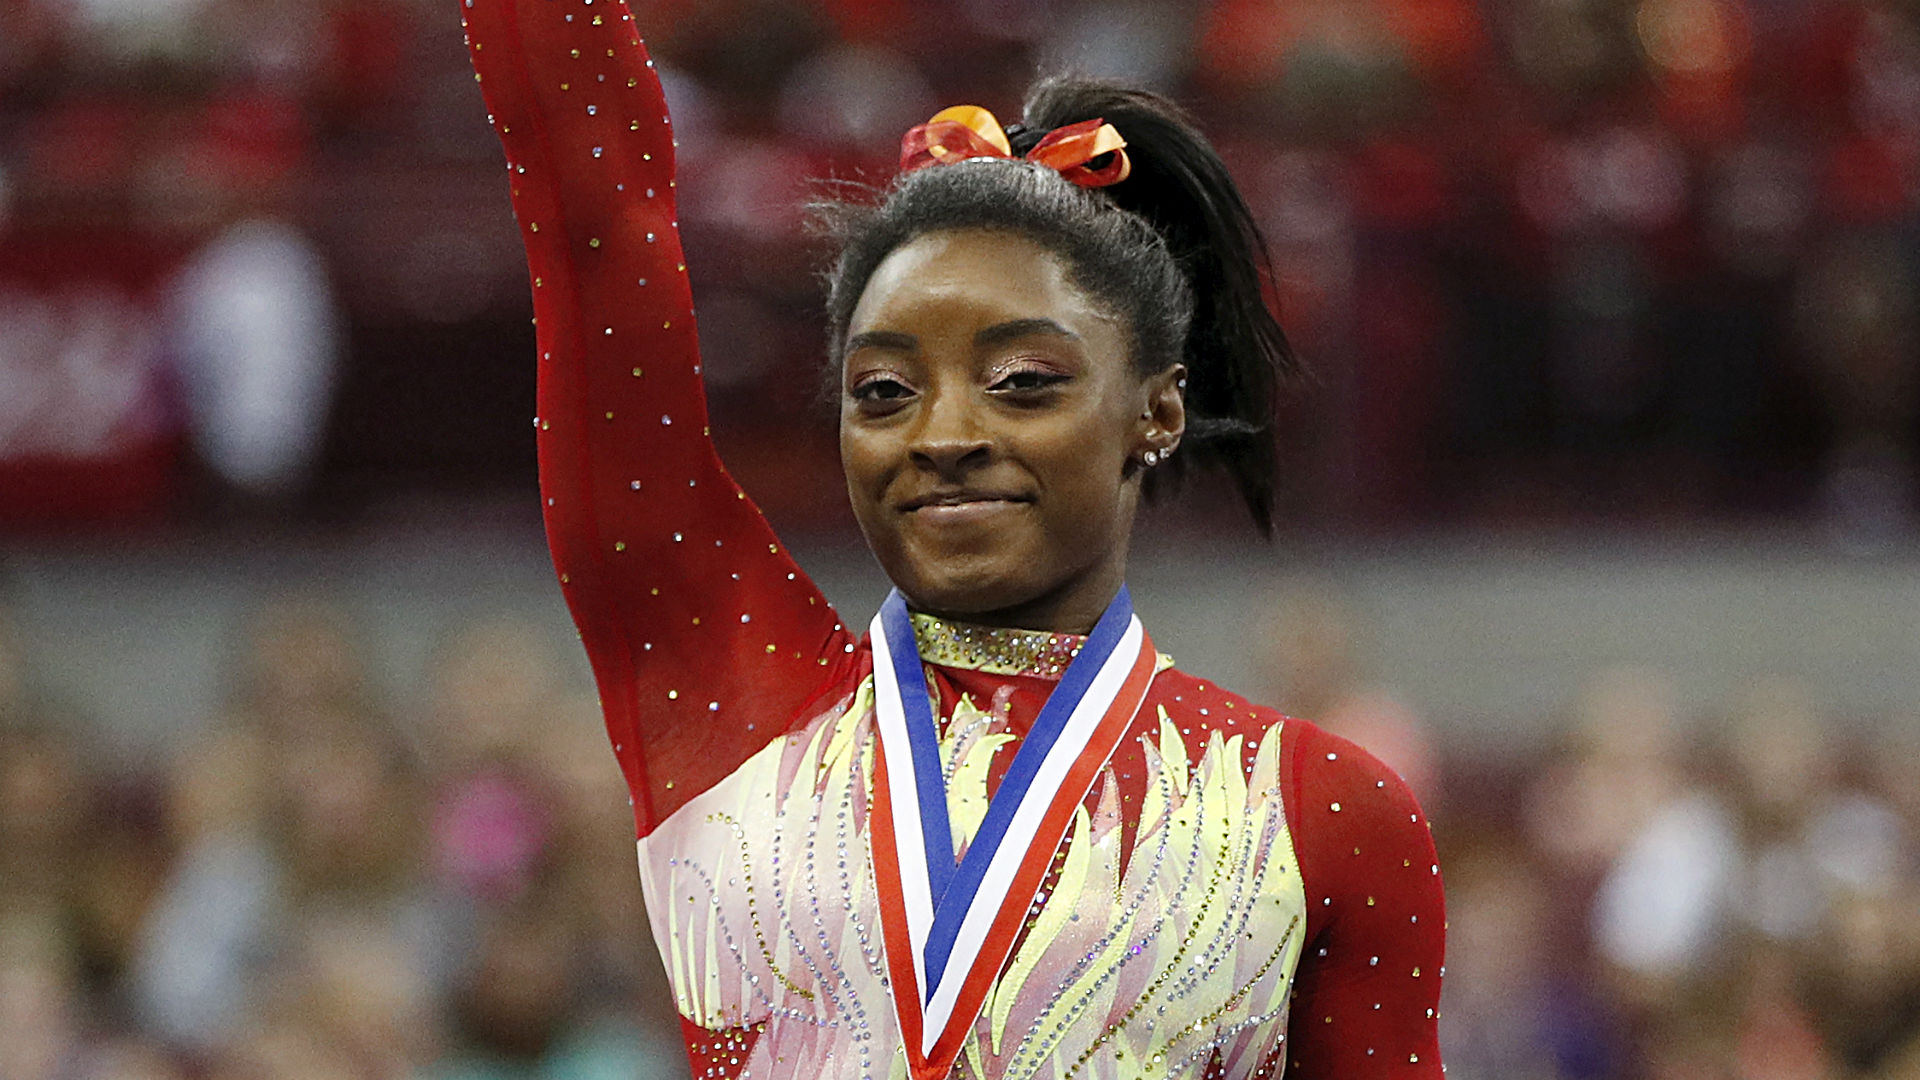 Biles-Simone-72918-usnews-getty-ftr